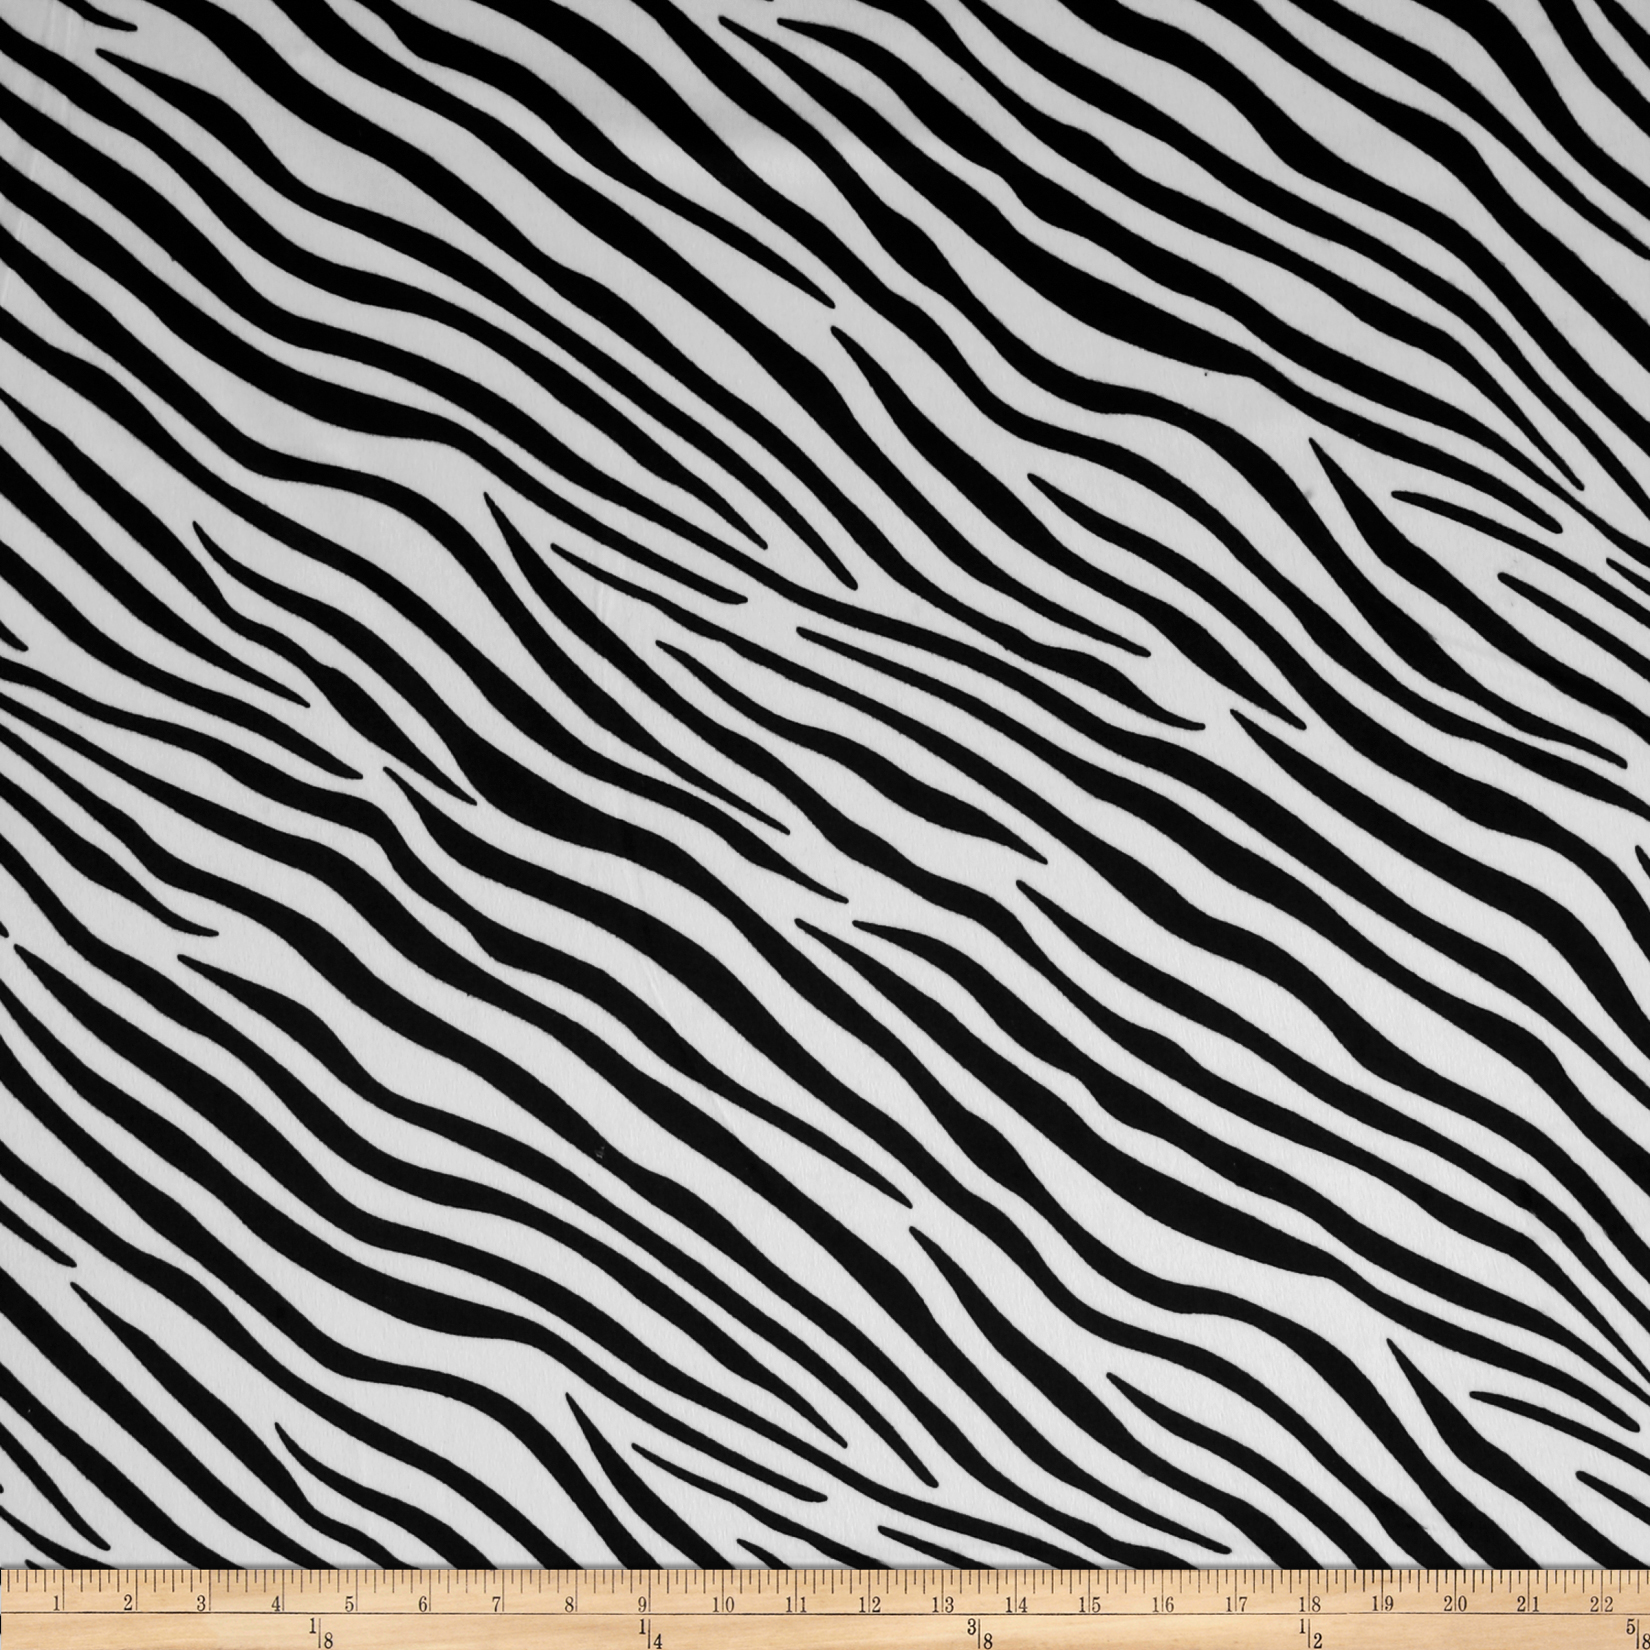 Animal Print Zebra Black/White Fabric